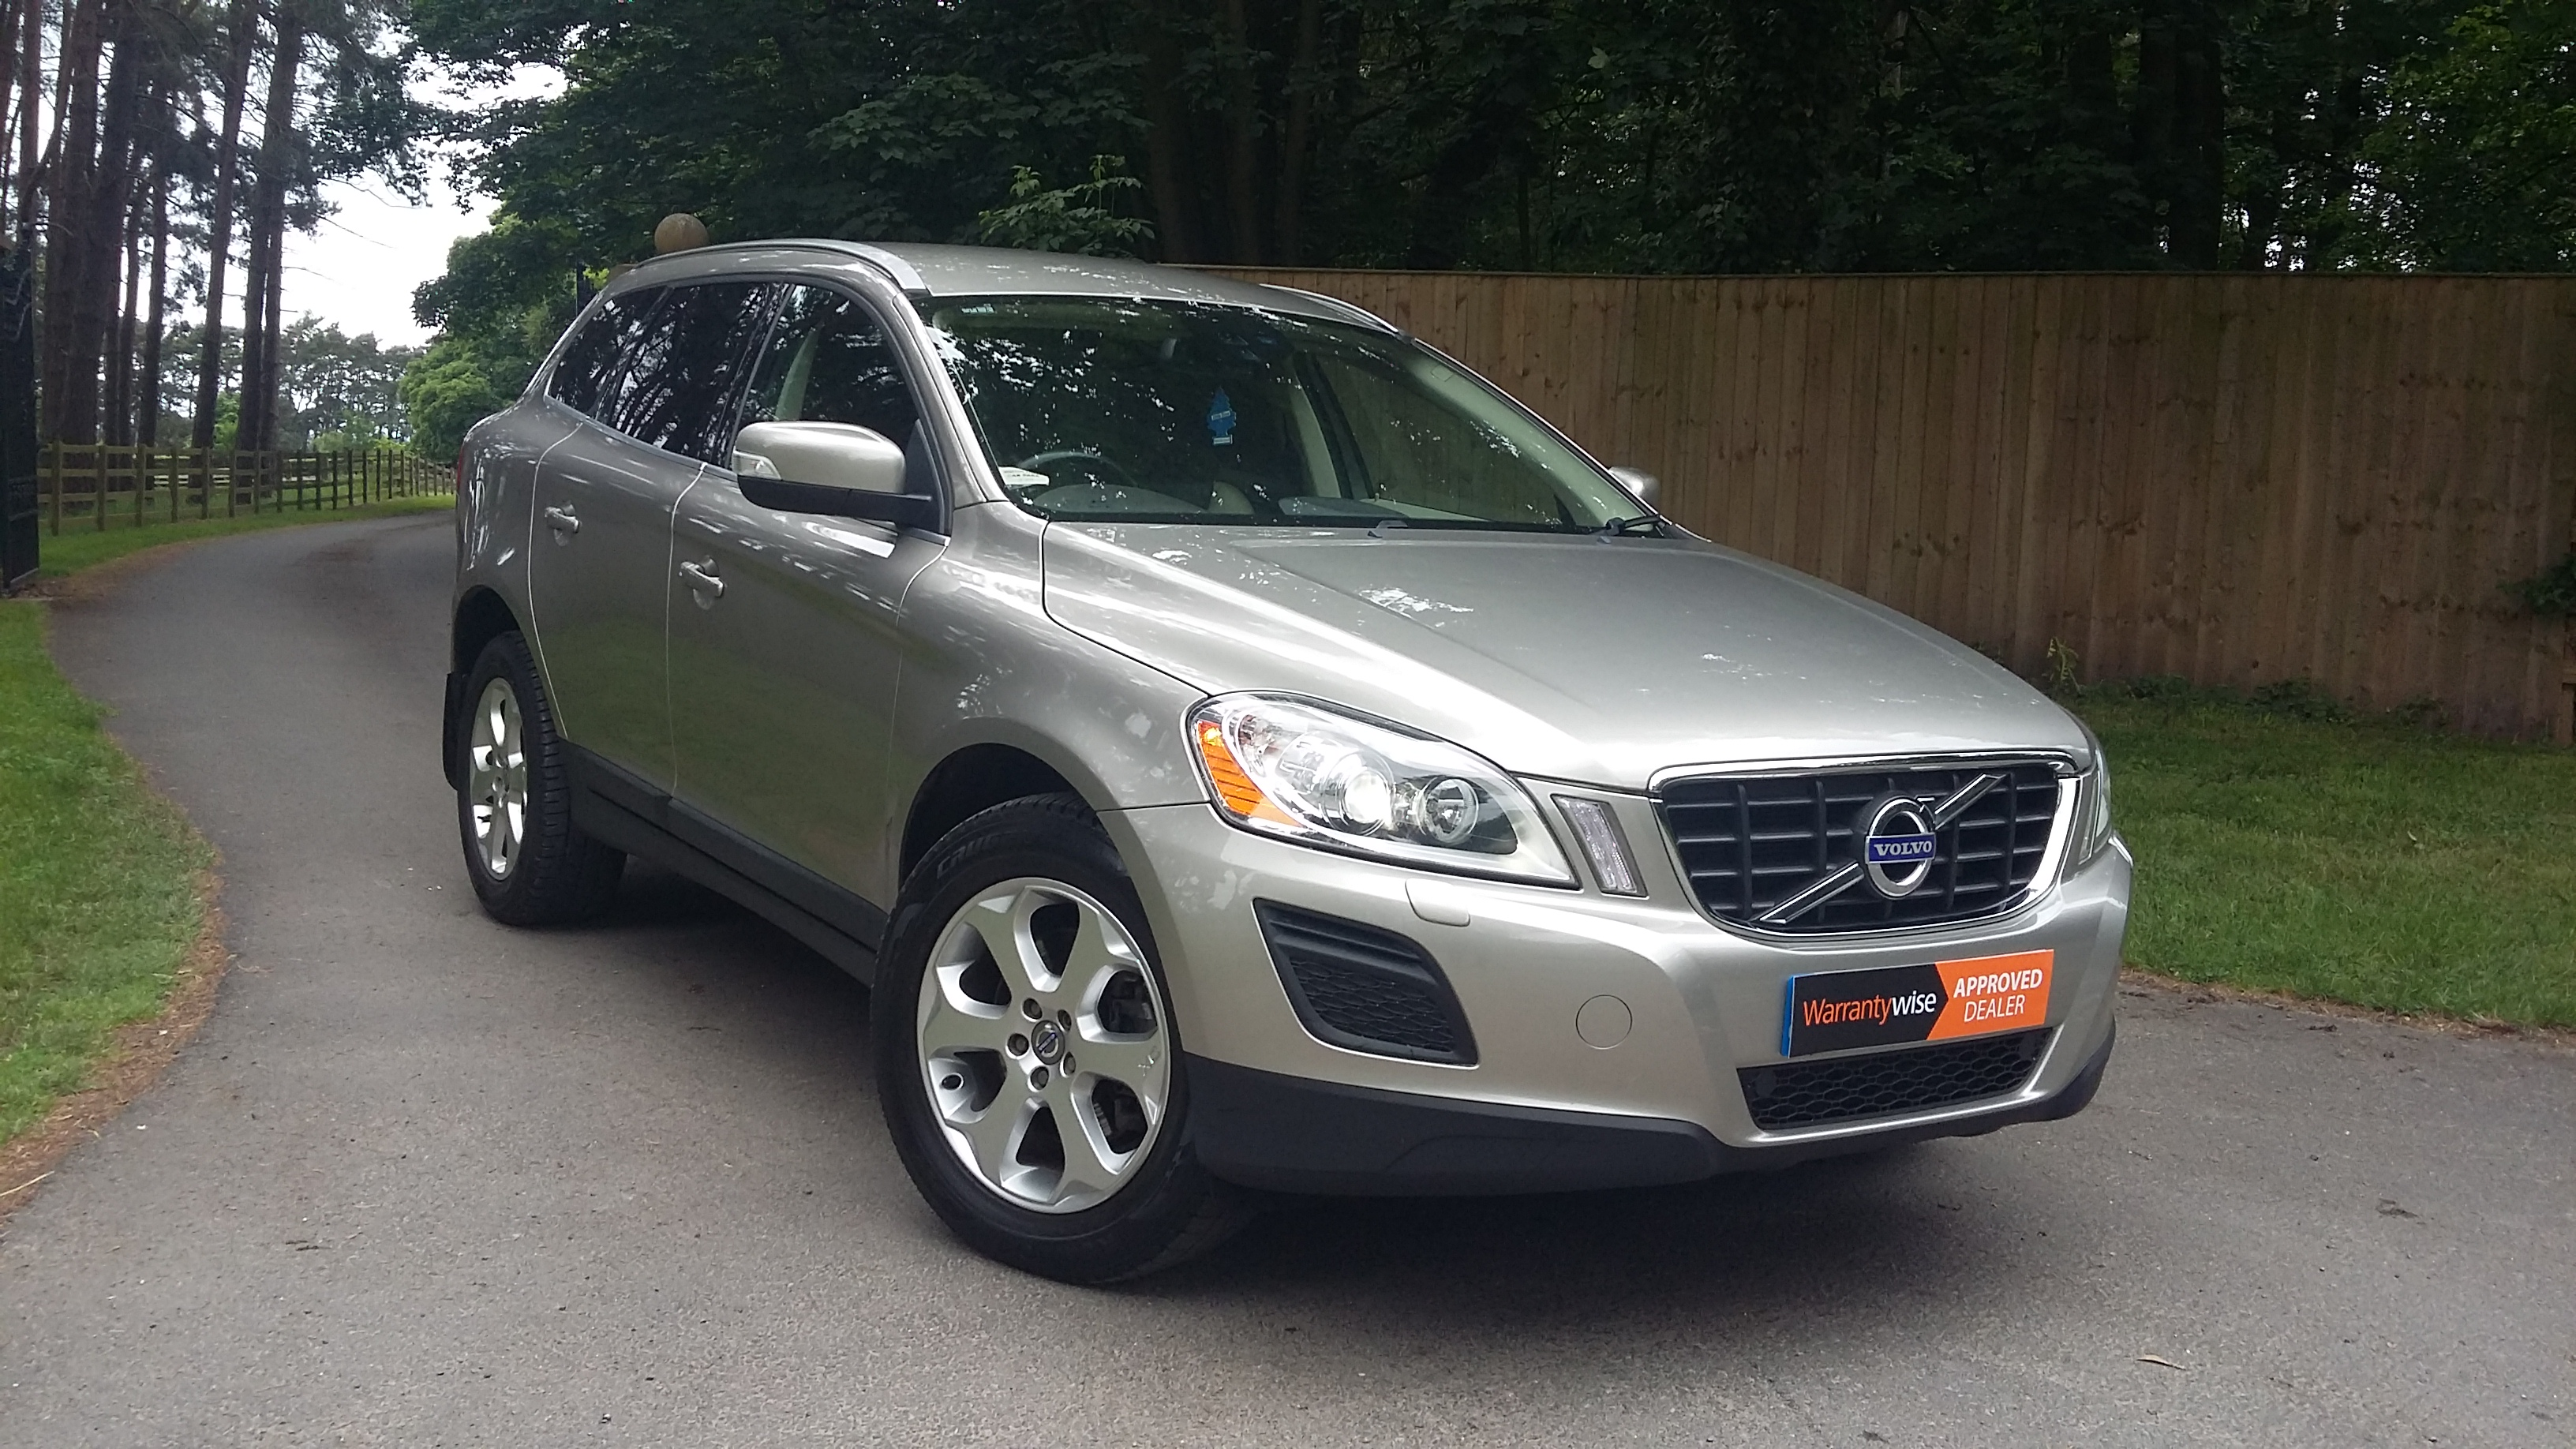 Volvo Of The Woodlands >> Volvo Xc60 2 4 D5 Se Lux For Sale By Woodlands Cars 27